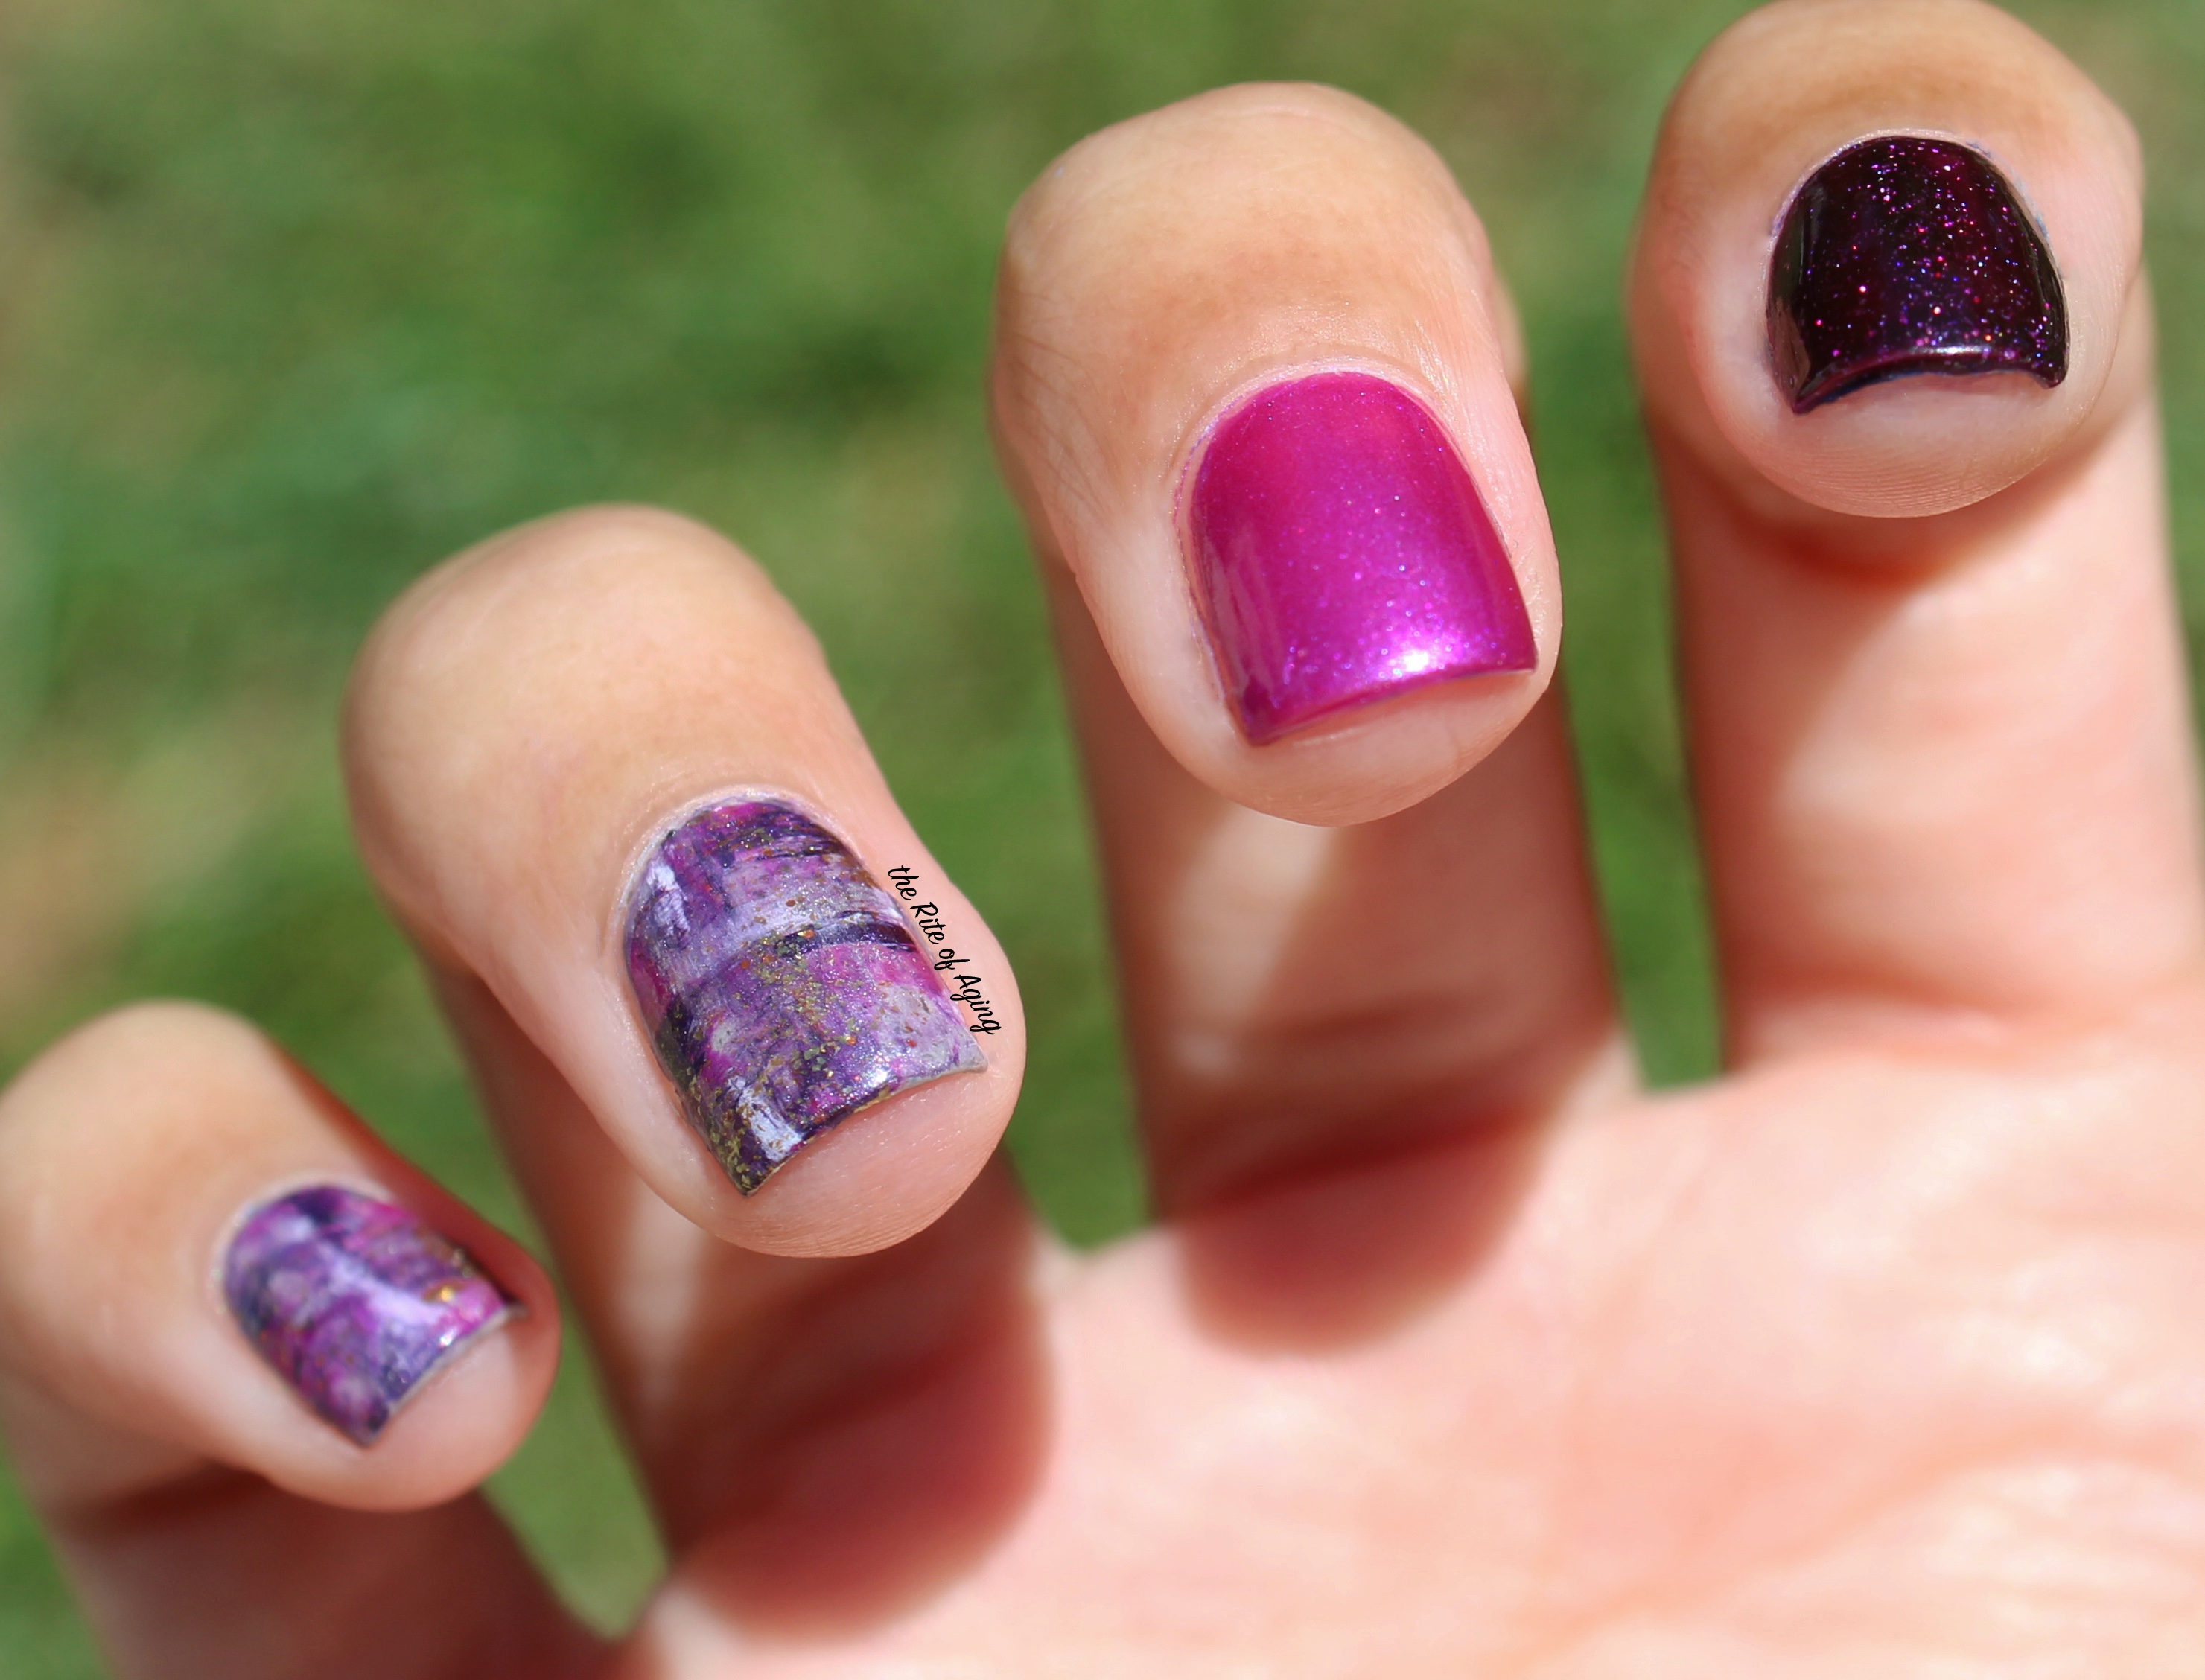 31 Day Global Nail Art Challenge (September 2017 - #31DC2017) Day Six: Purple Plaid Watercolor Nail Art